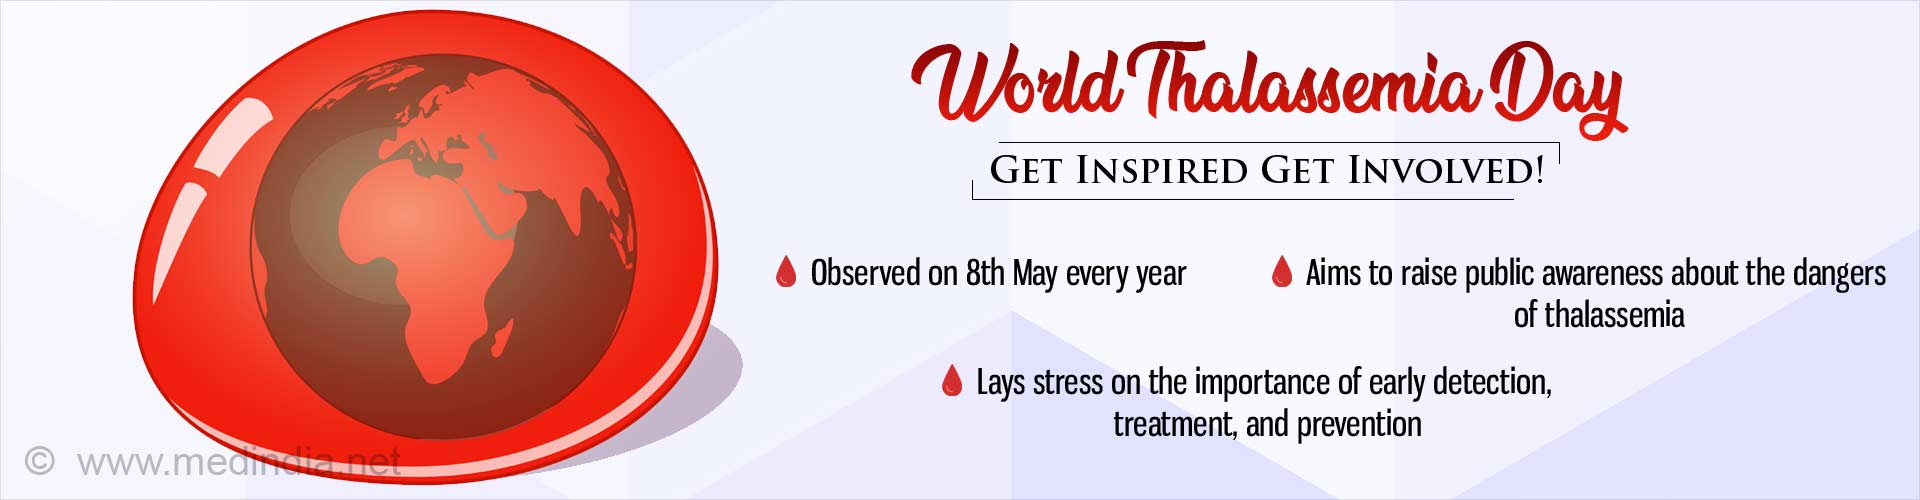 World Thalassemia Day: Give Blood Give Life